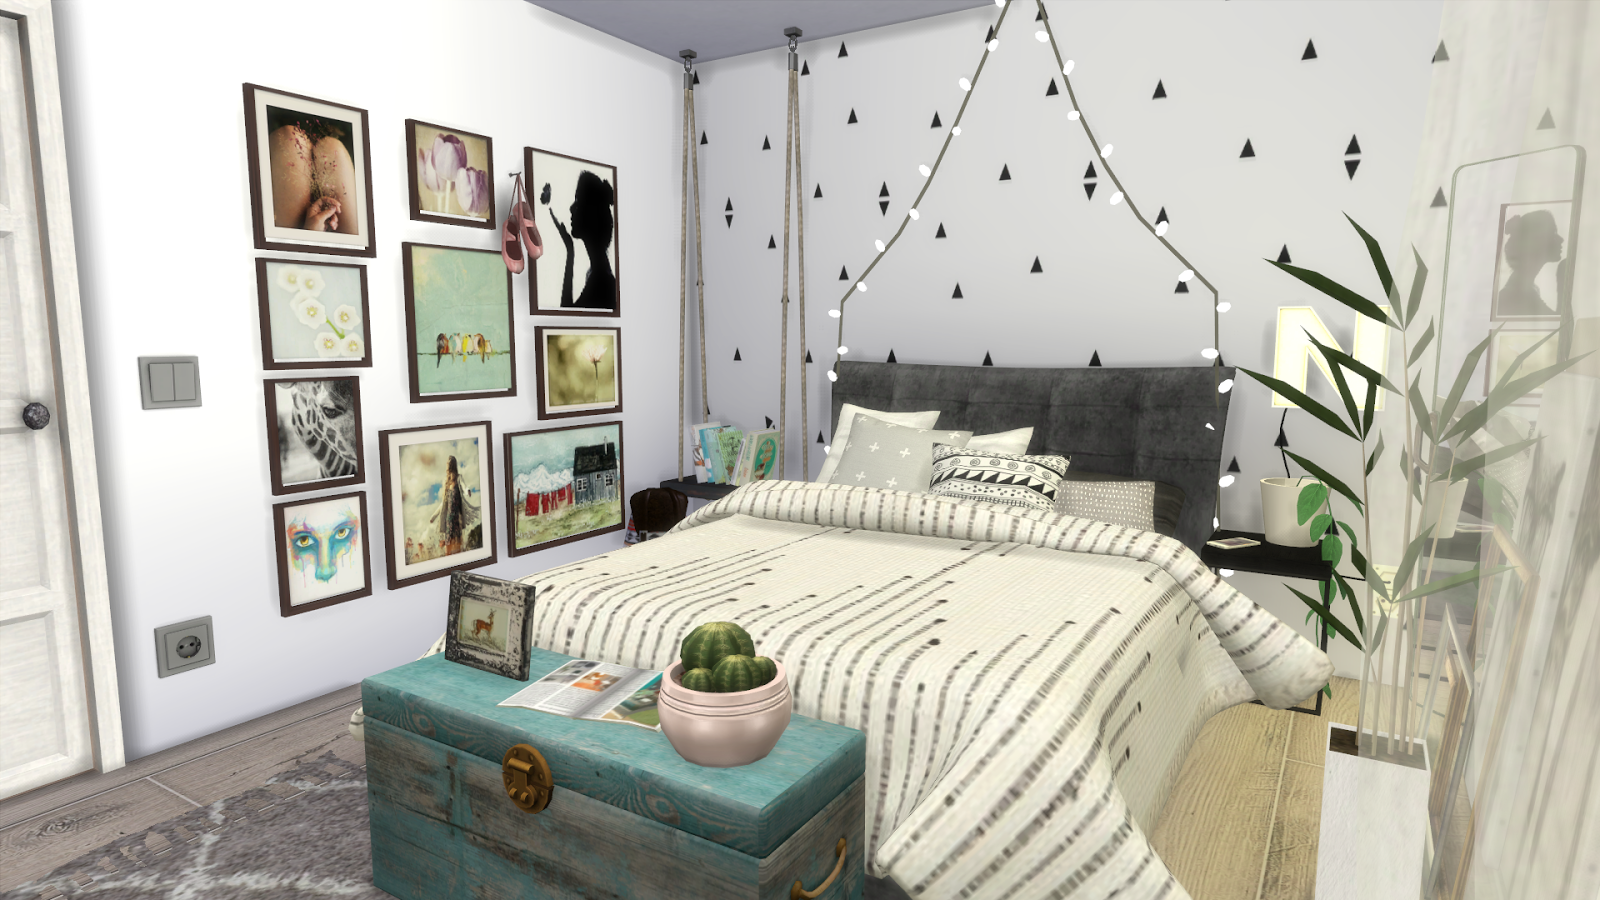 Sims 4 tumblr bedroom ii download cc creators links for Sims 3 6 bedroom house